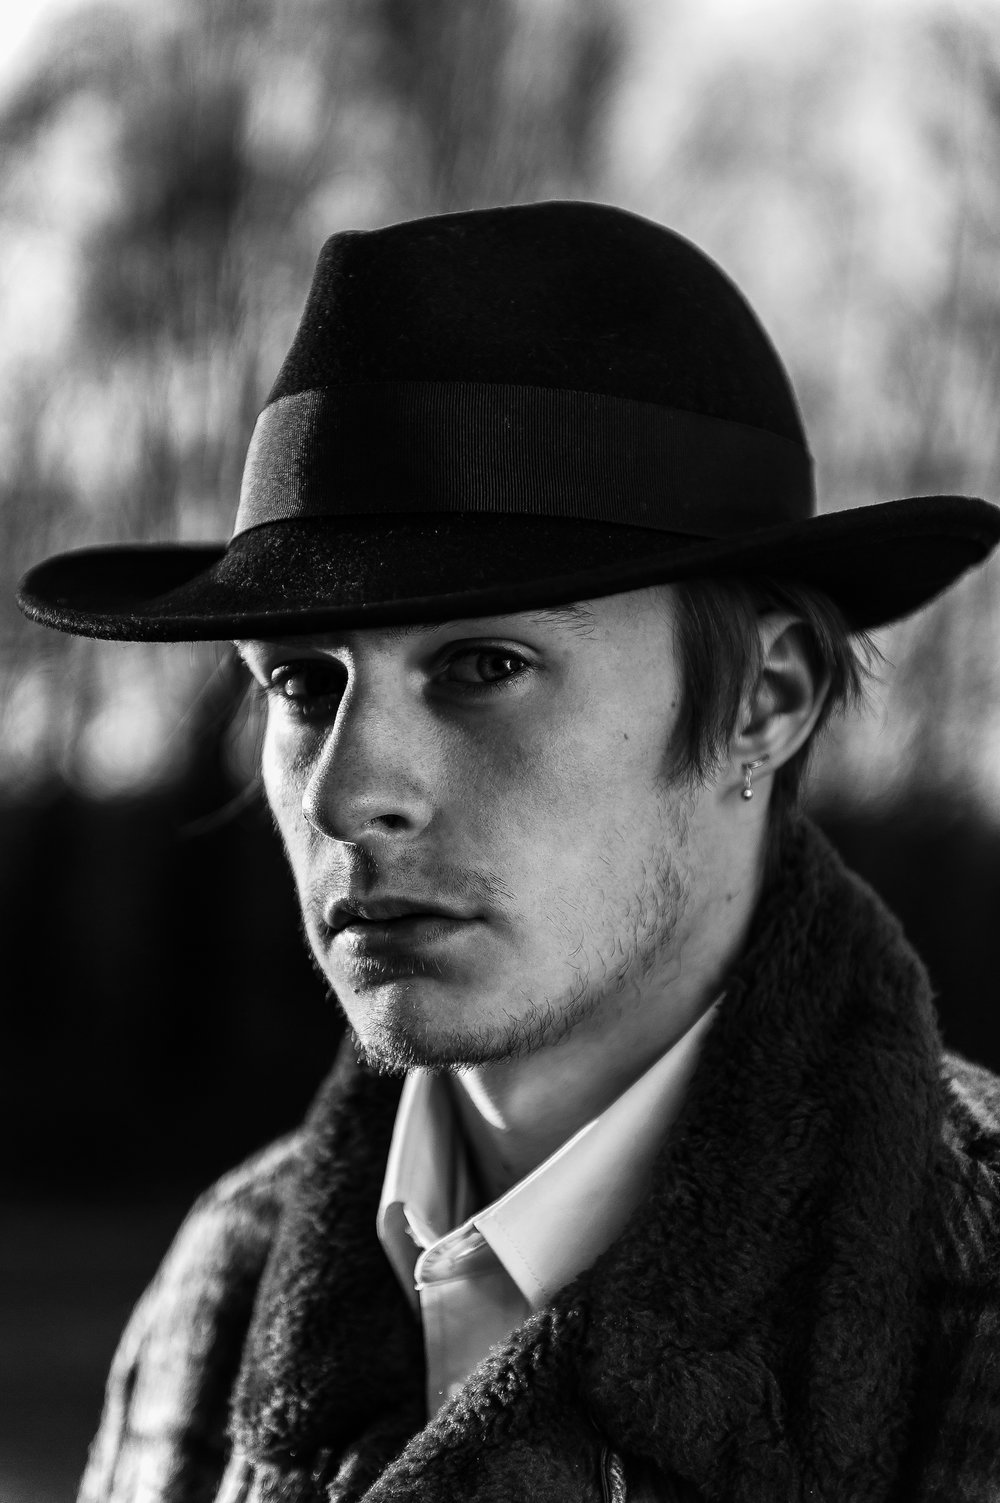 Lawless Photoshoot (16 of 14).jpg